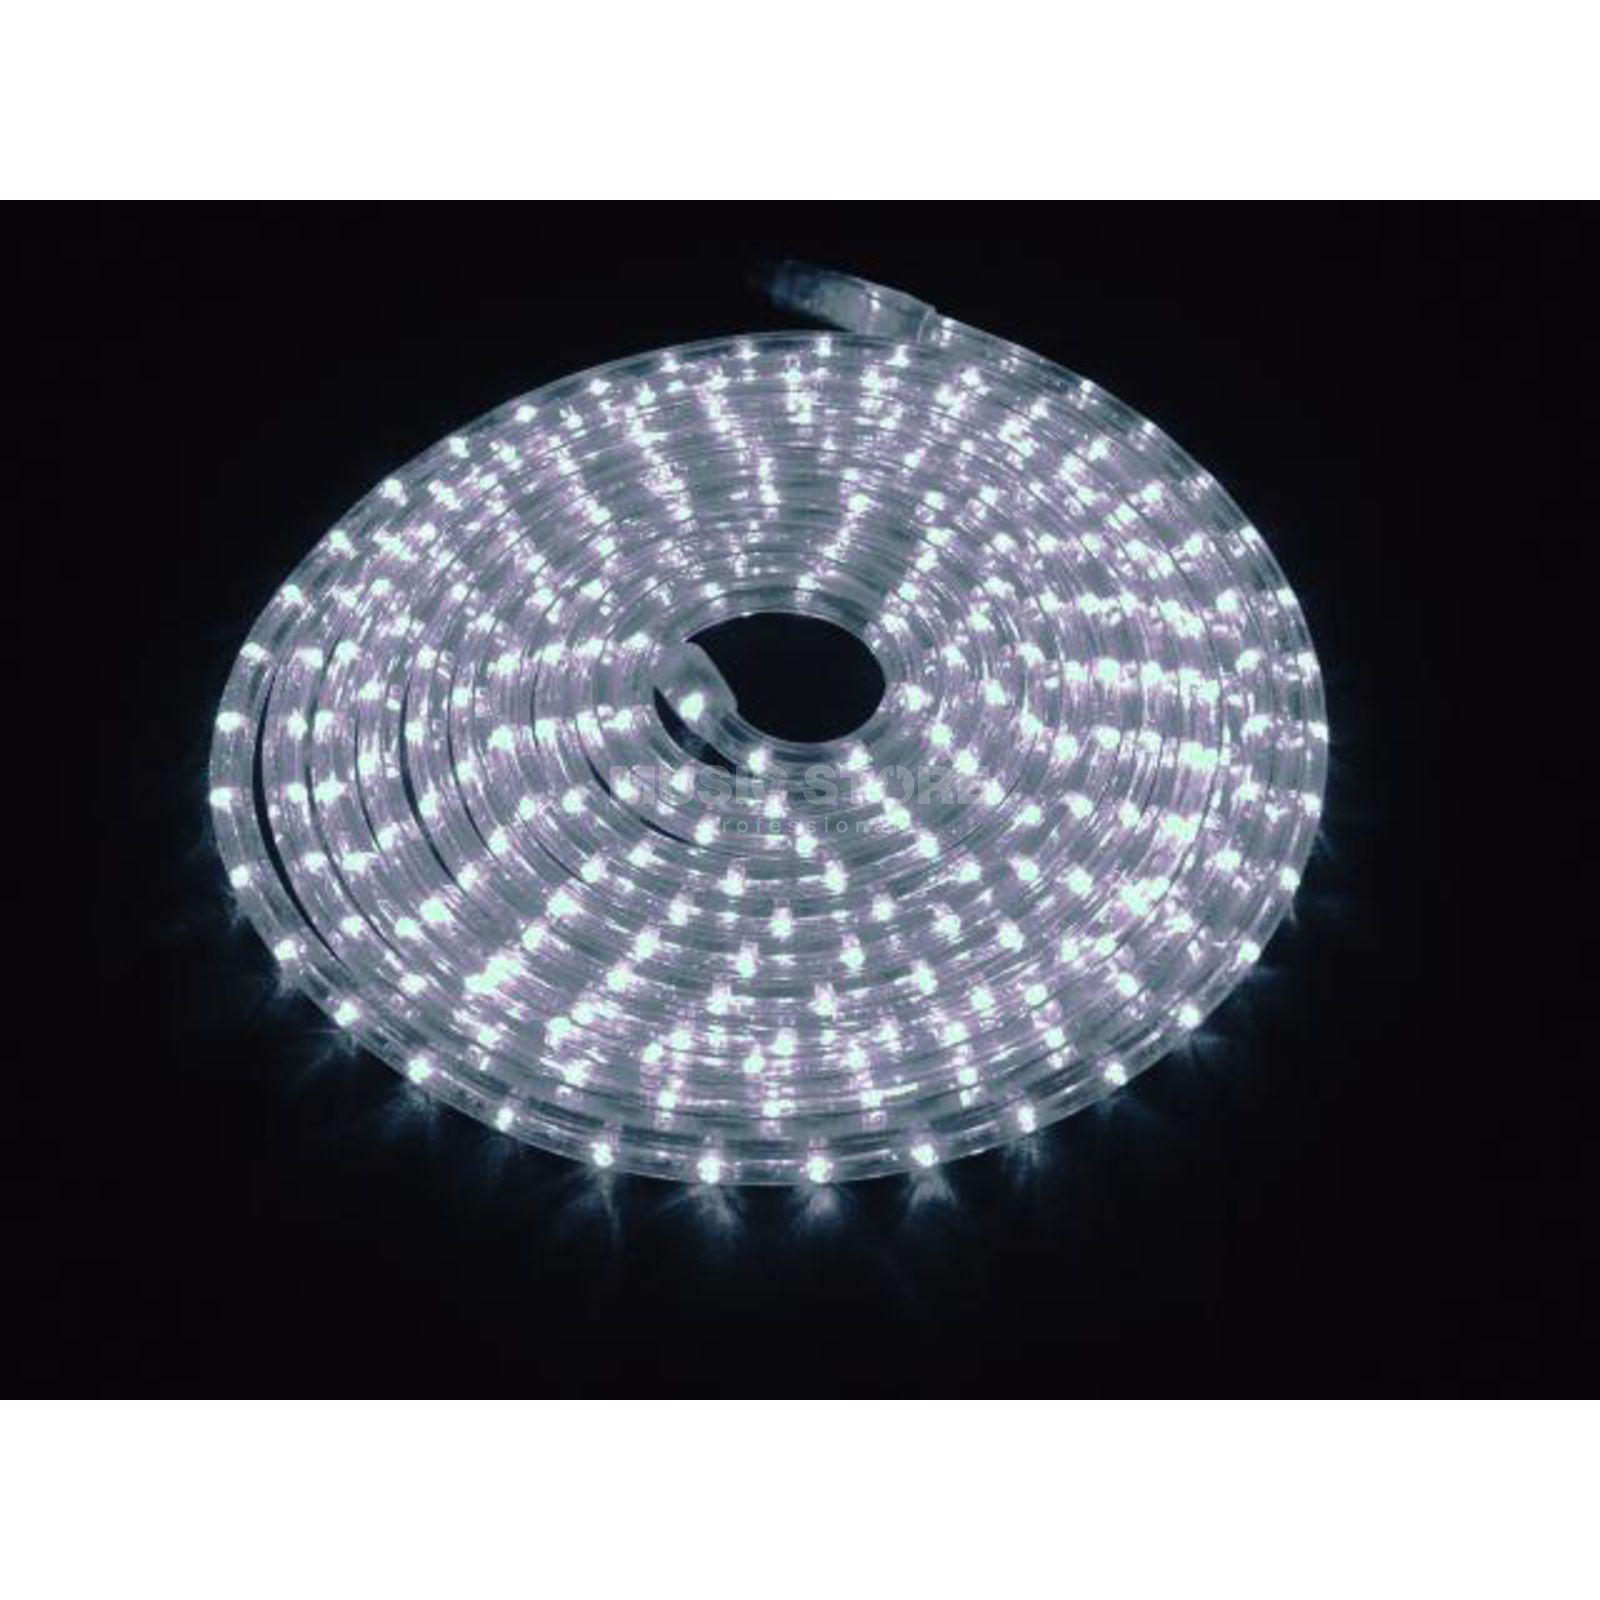 RUBBERLIGHT LED RL1-230V white 9m 6400K Produktbillede